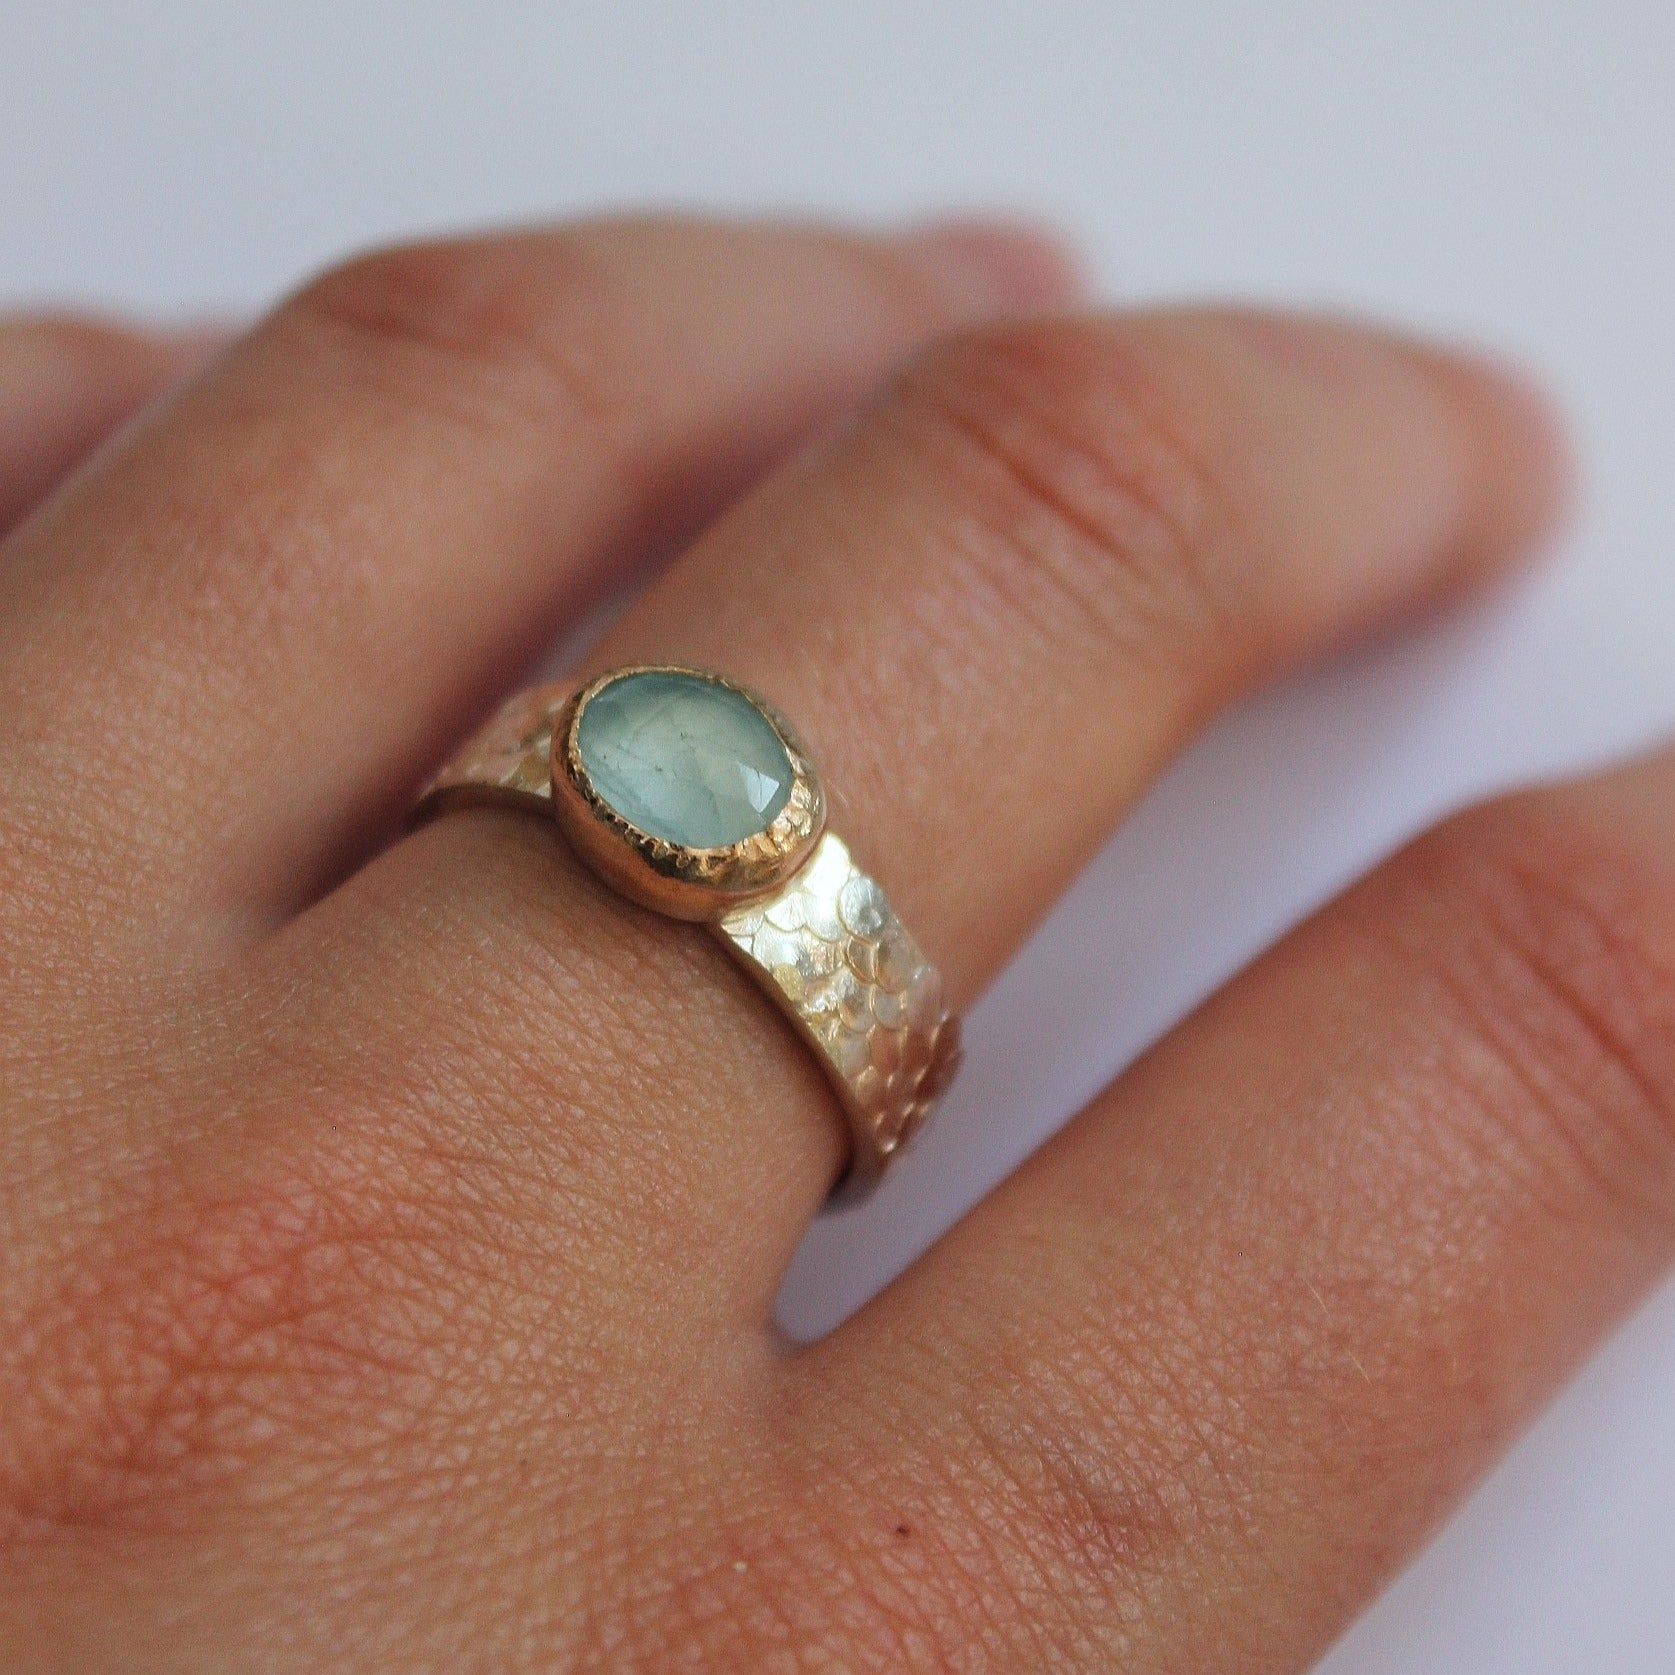 Hand crafted Aquamarine ring made with silver and 9 ct gold. The ring features Josie's signature Siren detailing around the band. March birthstone jewellery.